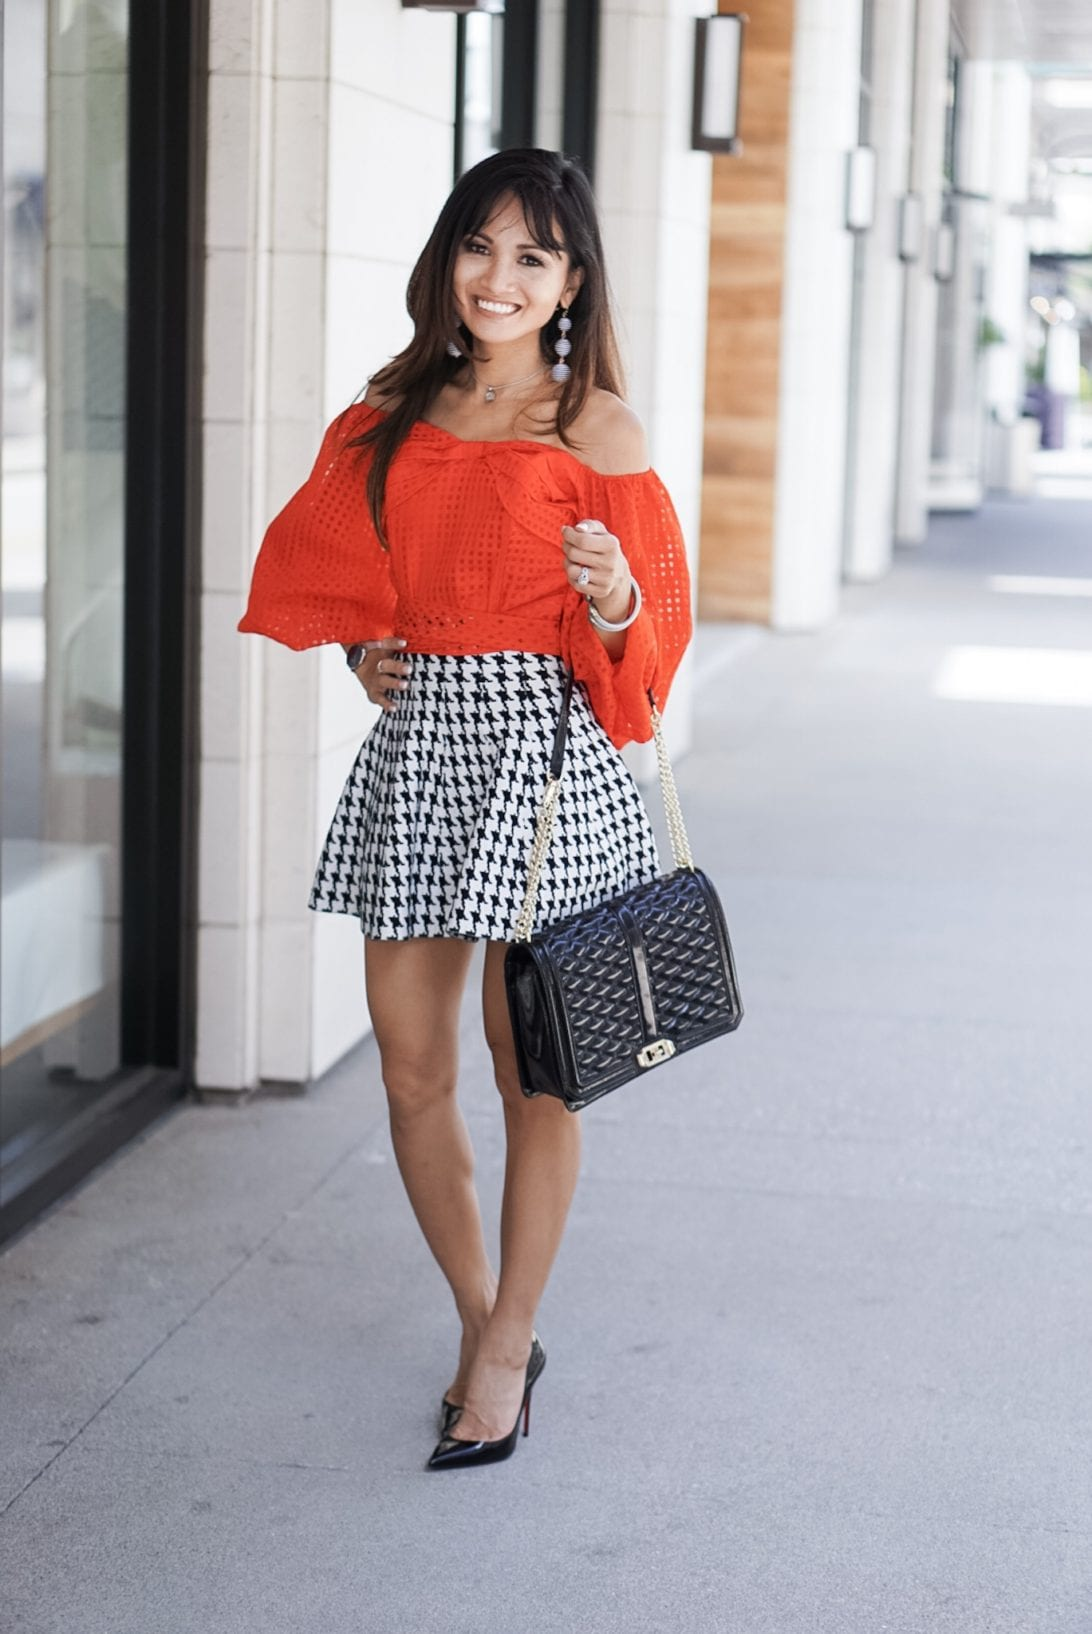 RED OFF THE SHOULDER BASKET WEAVE TOP WITH BOW TIE WAIST, houndstooth skirt, puff sleeves, love cross body bag, flap bag, louboutin heels, black patent heels, rebecca minkoff bag